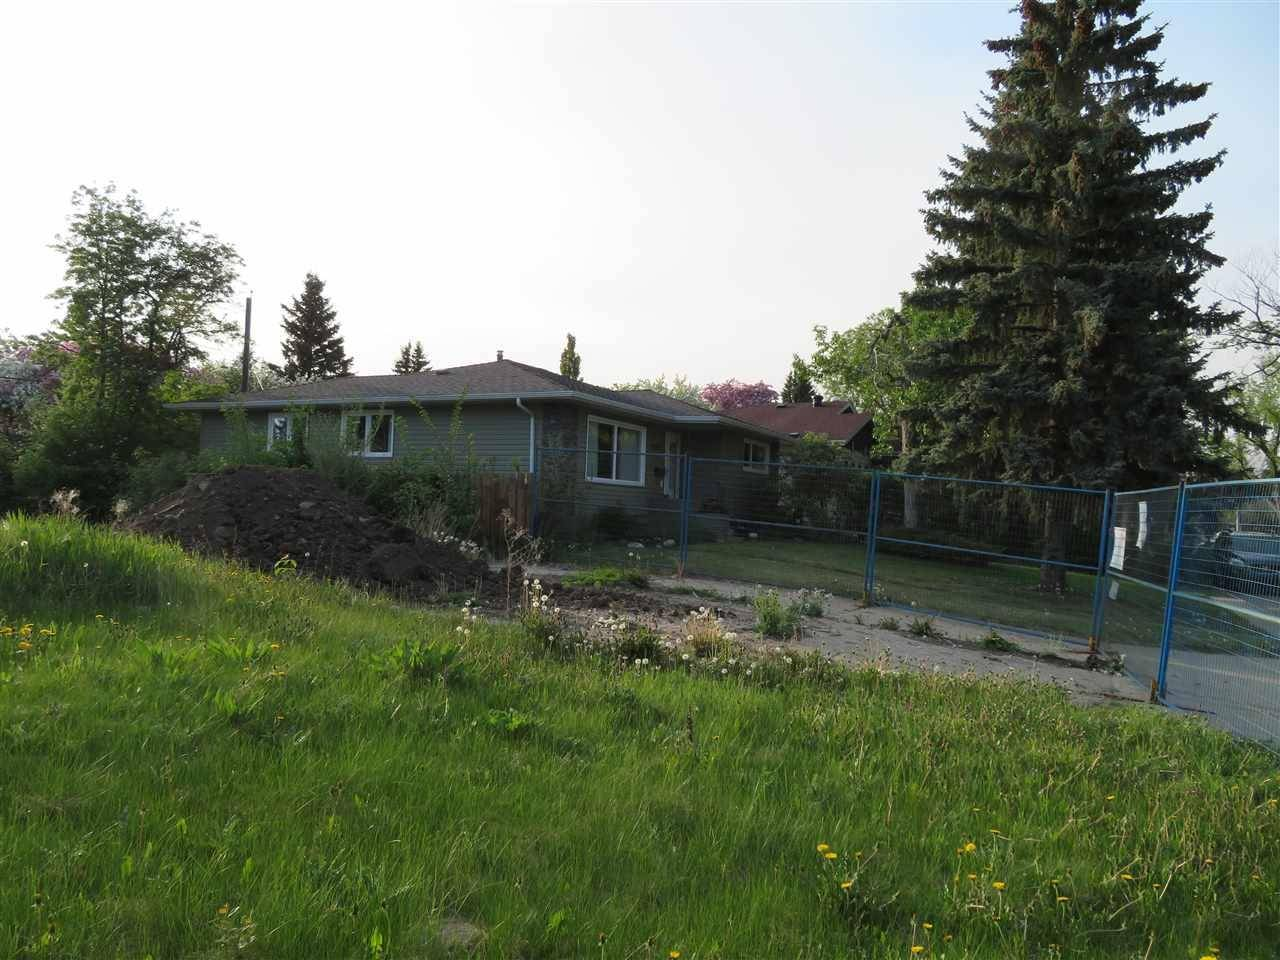 Residential property for sale at 8712 142 St Nw Edmonton Alberta - MLS: E4176275